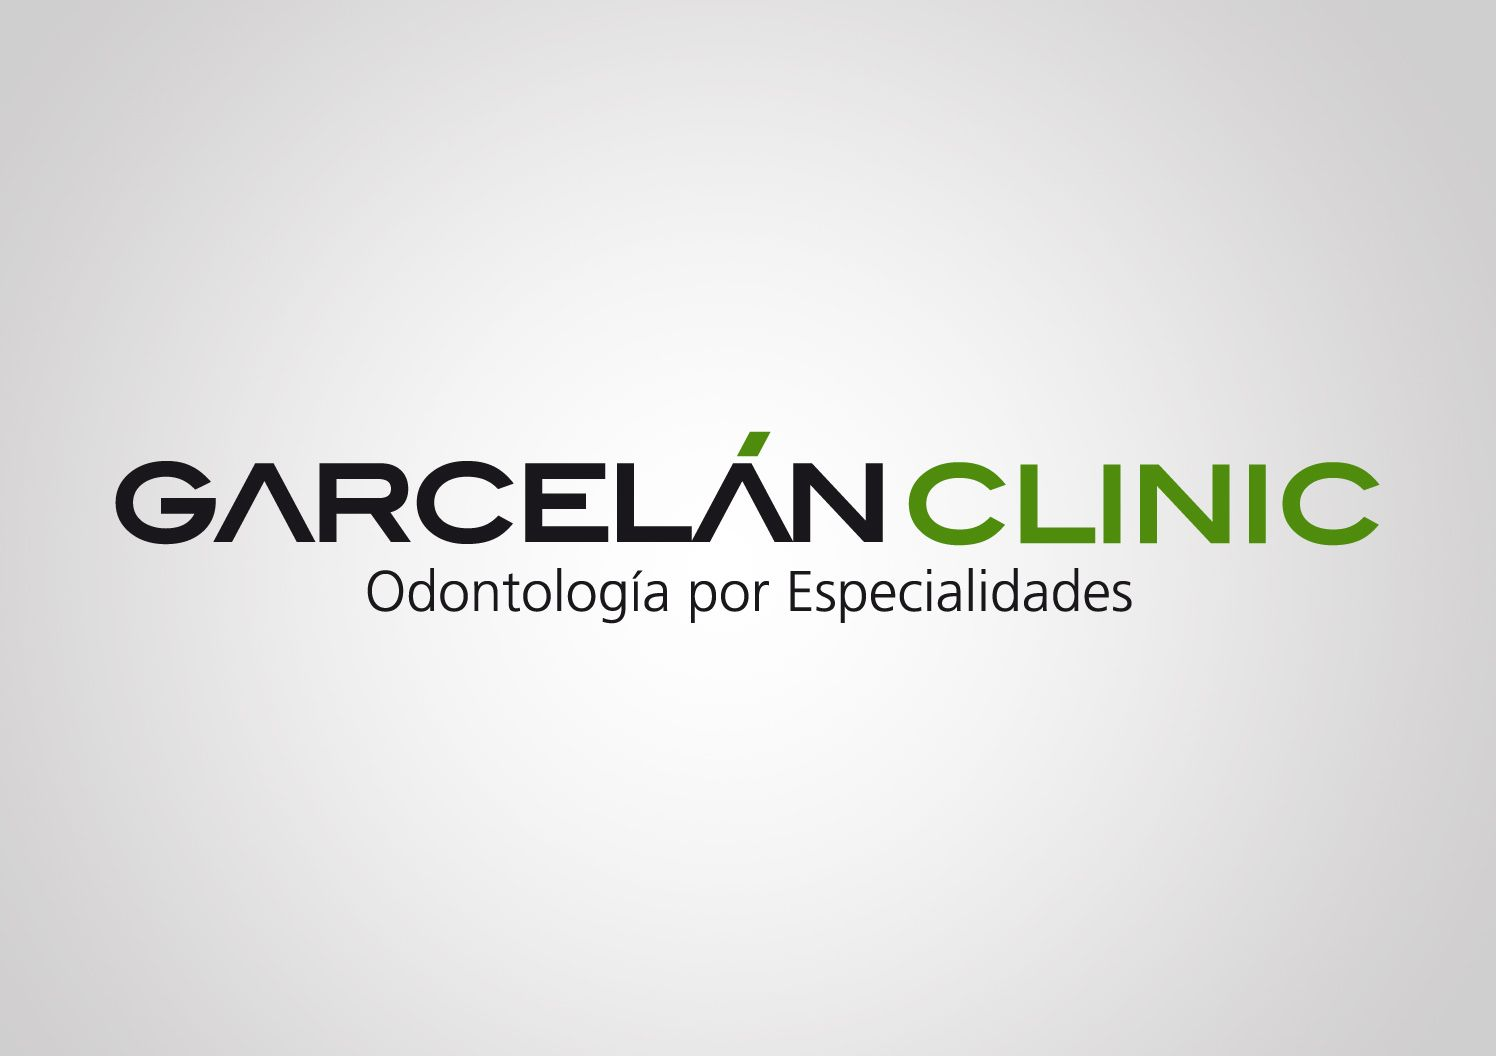 diseño de logotipo de clinica dental garcelan, agencia de publicidad sevilla. marketing dental, marketing para dentistas, publicidad para clinica dental, publicidad para dentistas